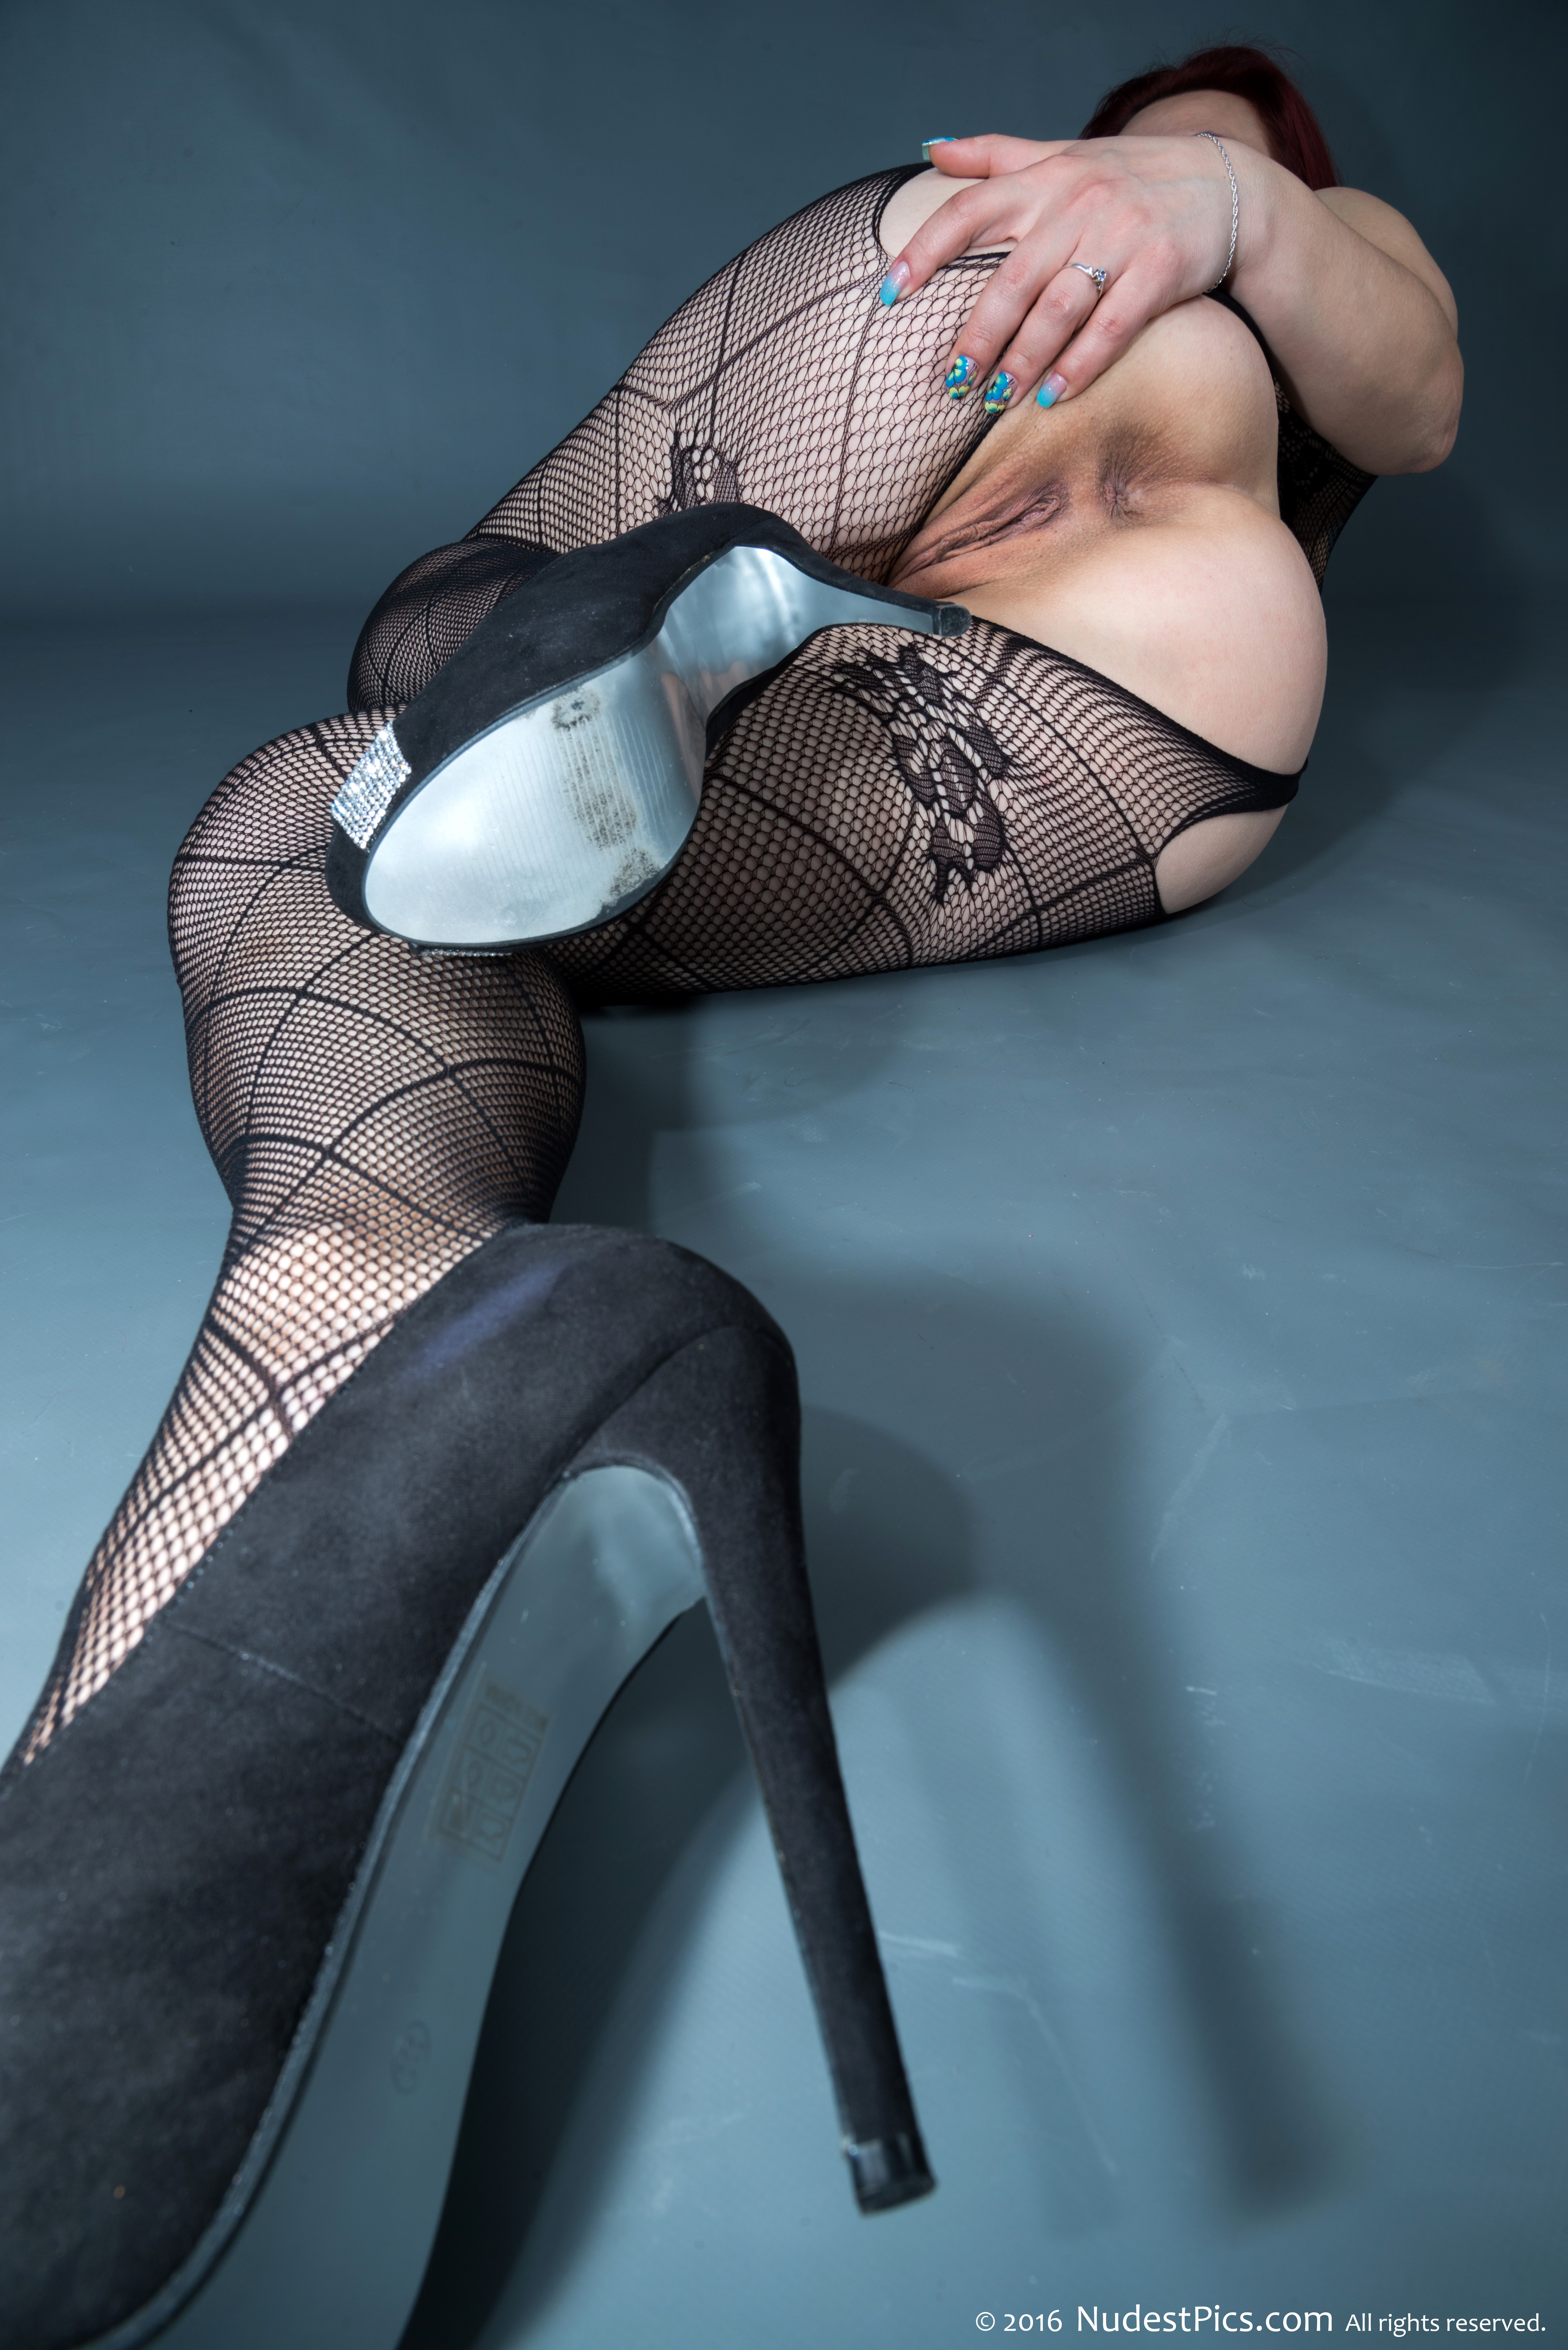 High Heels Sexy Stockings Spreading Hot Derriere